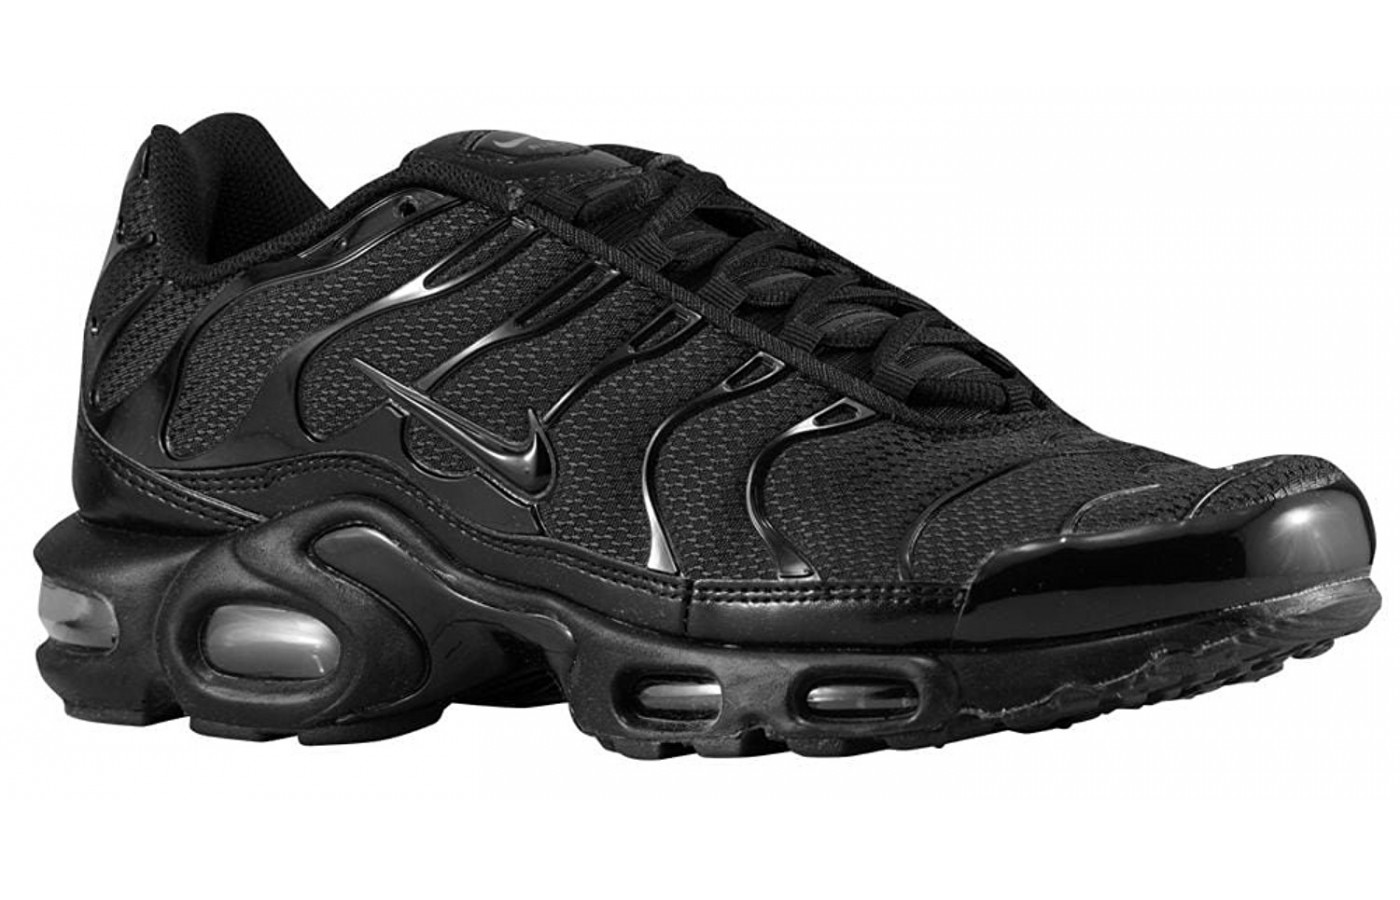 the best attitude dafef 7b99d A three quarter view of the Nike Air Max Plus shoe ...